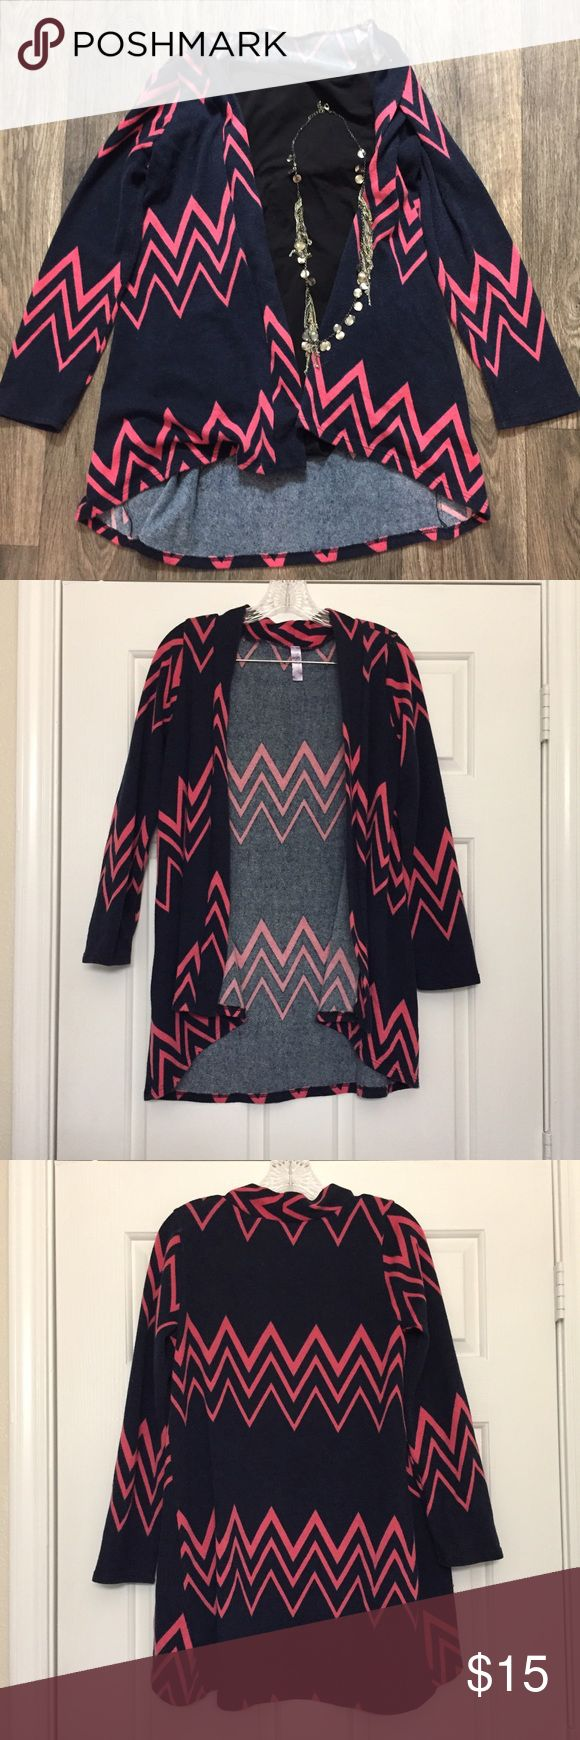 Pink Chevron Cardigan This is a purple cardigan with pink chevron pattern. 100% Polyester. Make me an offer! Alya Sweaters Cardigans